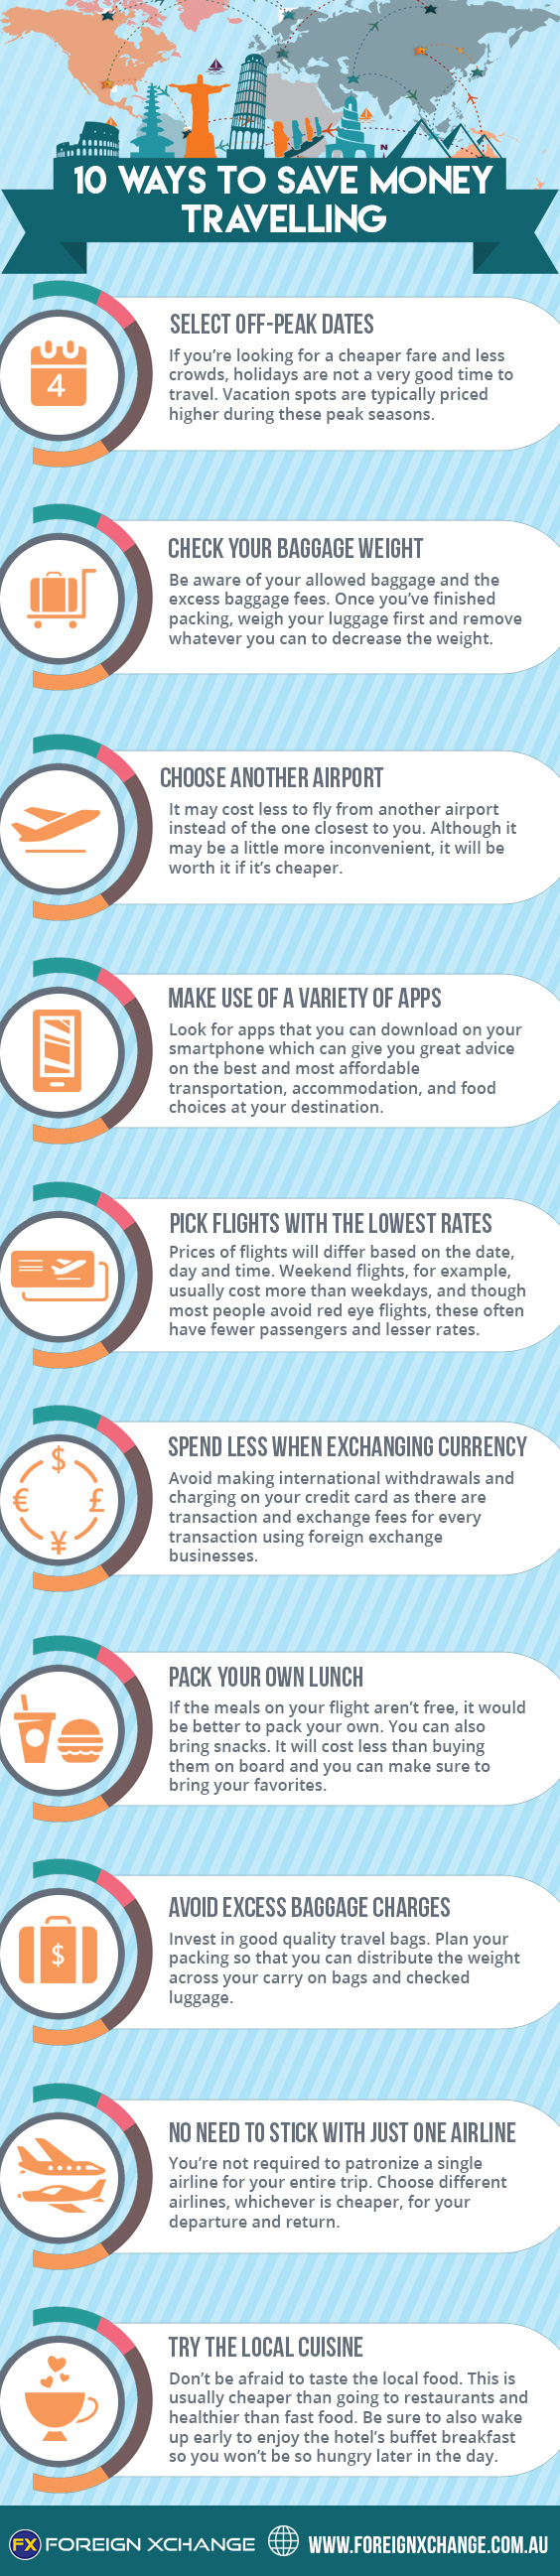 10-ways-to-save-money-travelling